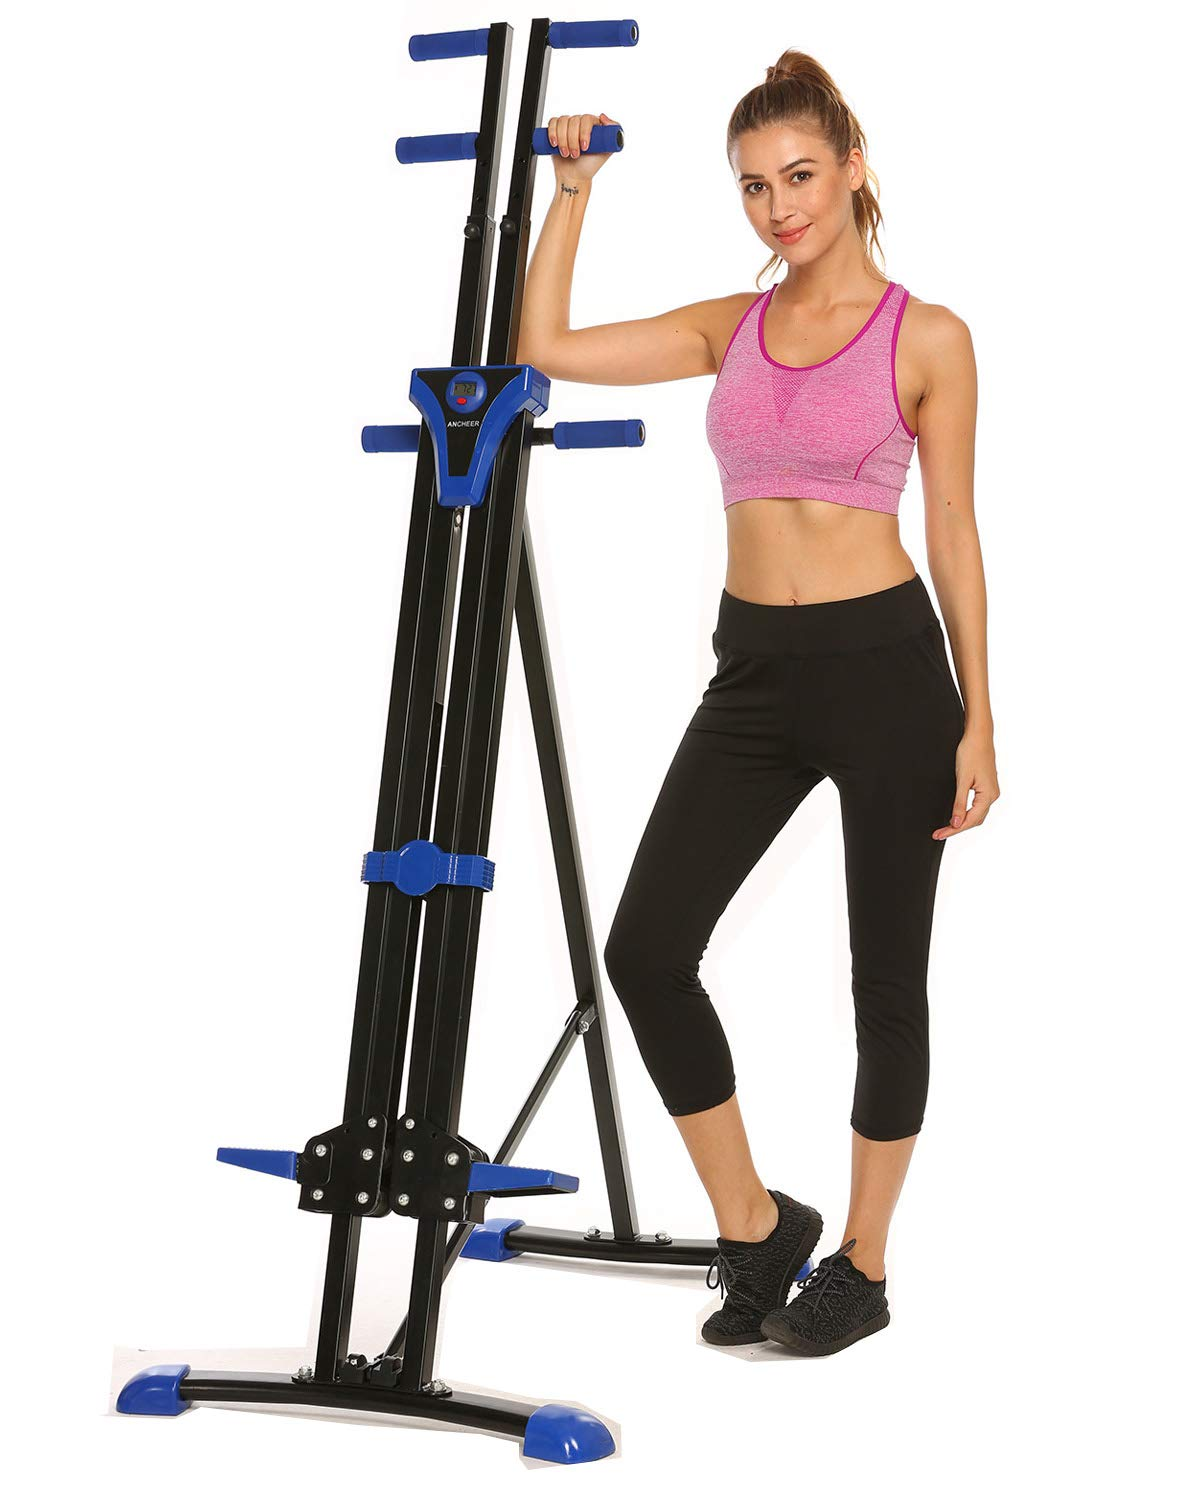 Hurbo Vertical Climber Home Gym Exercise Folding Climbing Machine Exercise Bike for Home Body Trainer Stepper Cardio Workout Training Non-Stick Grips Legs Arms Abs Calf (Black Blue) by Hurbo (Image #9)